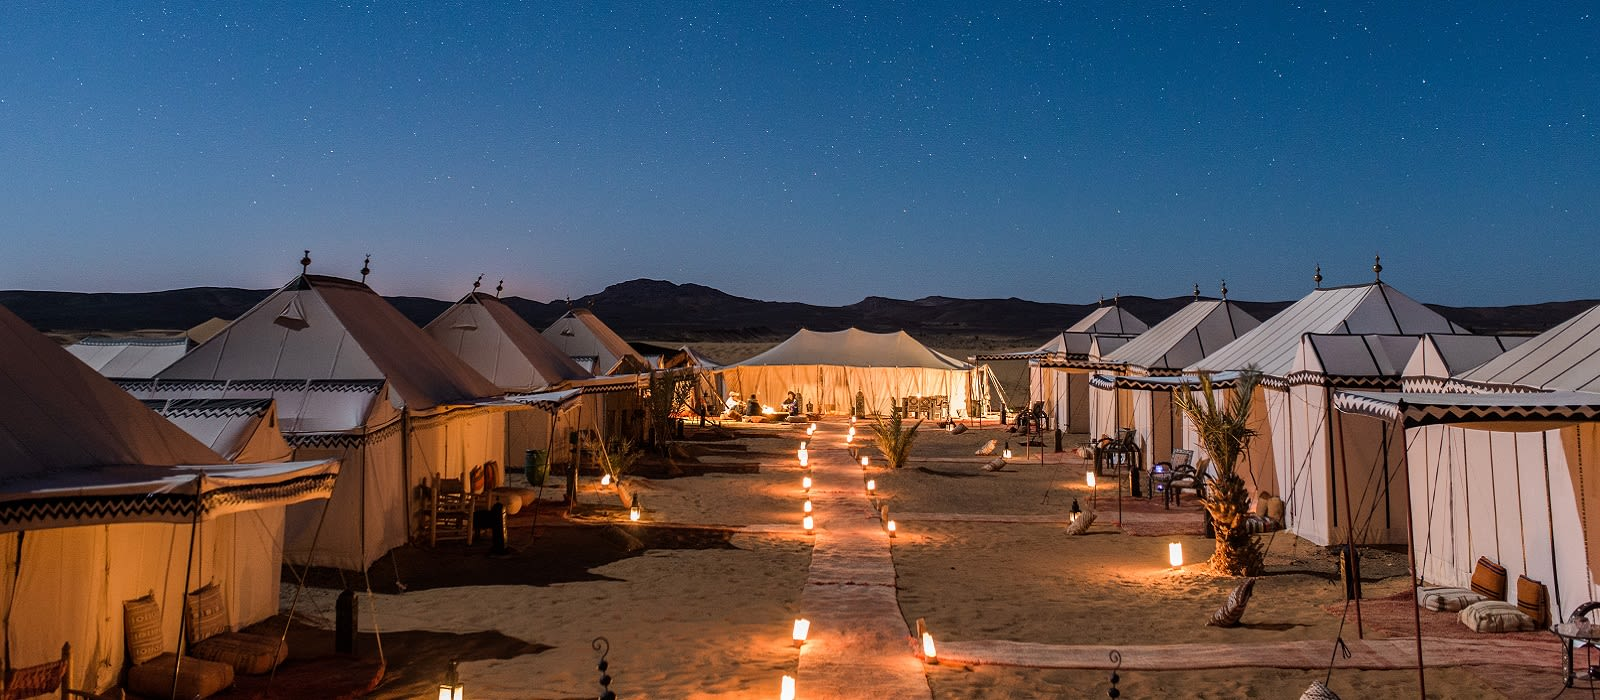 Hotel Desert Luxury Camp Morocco